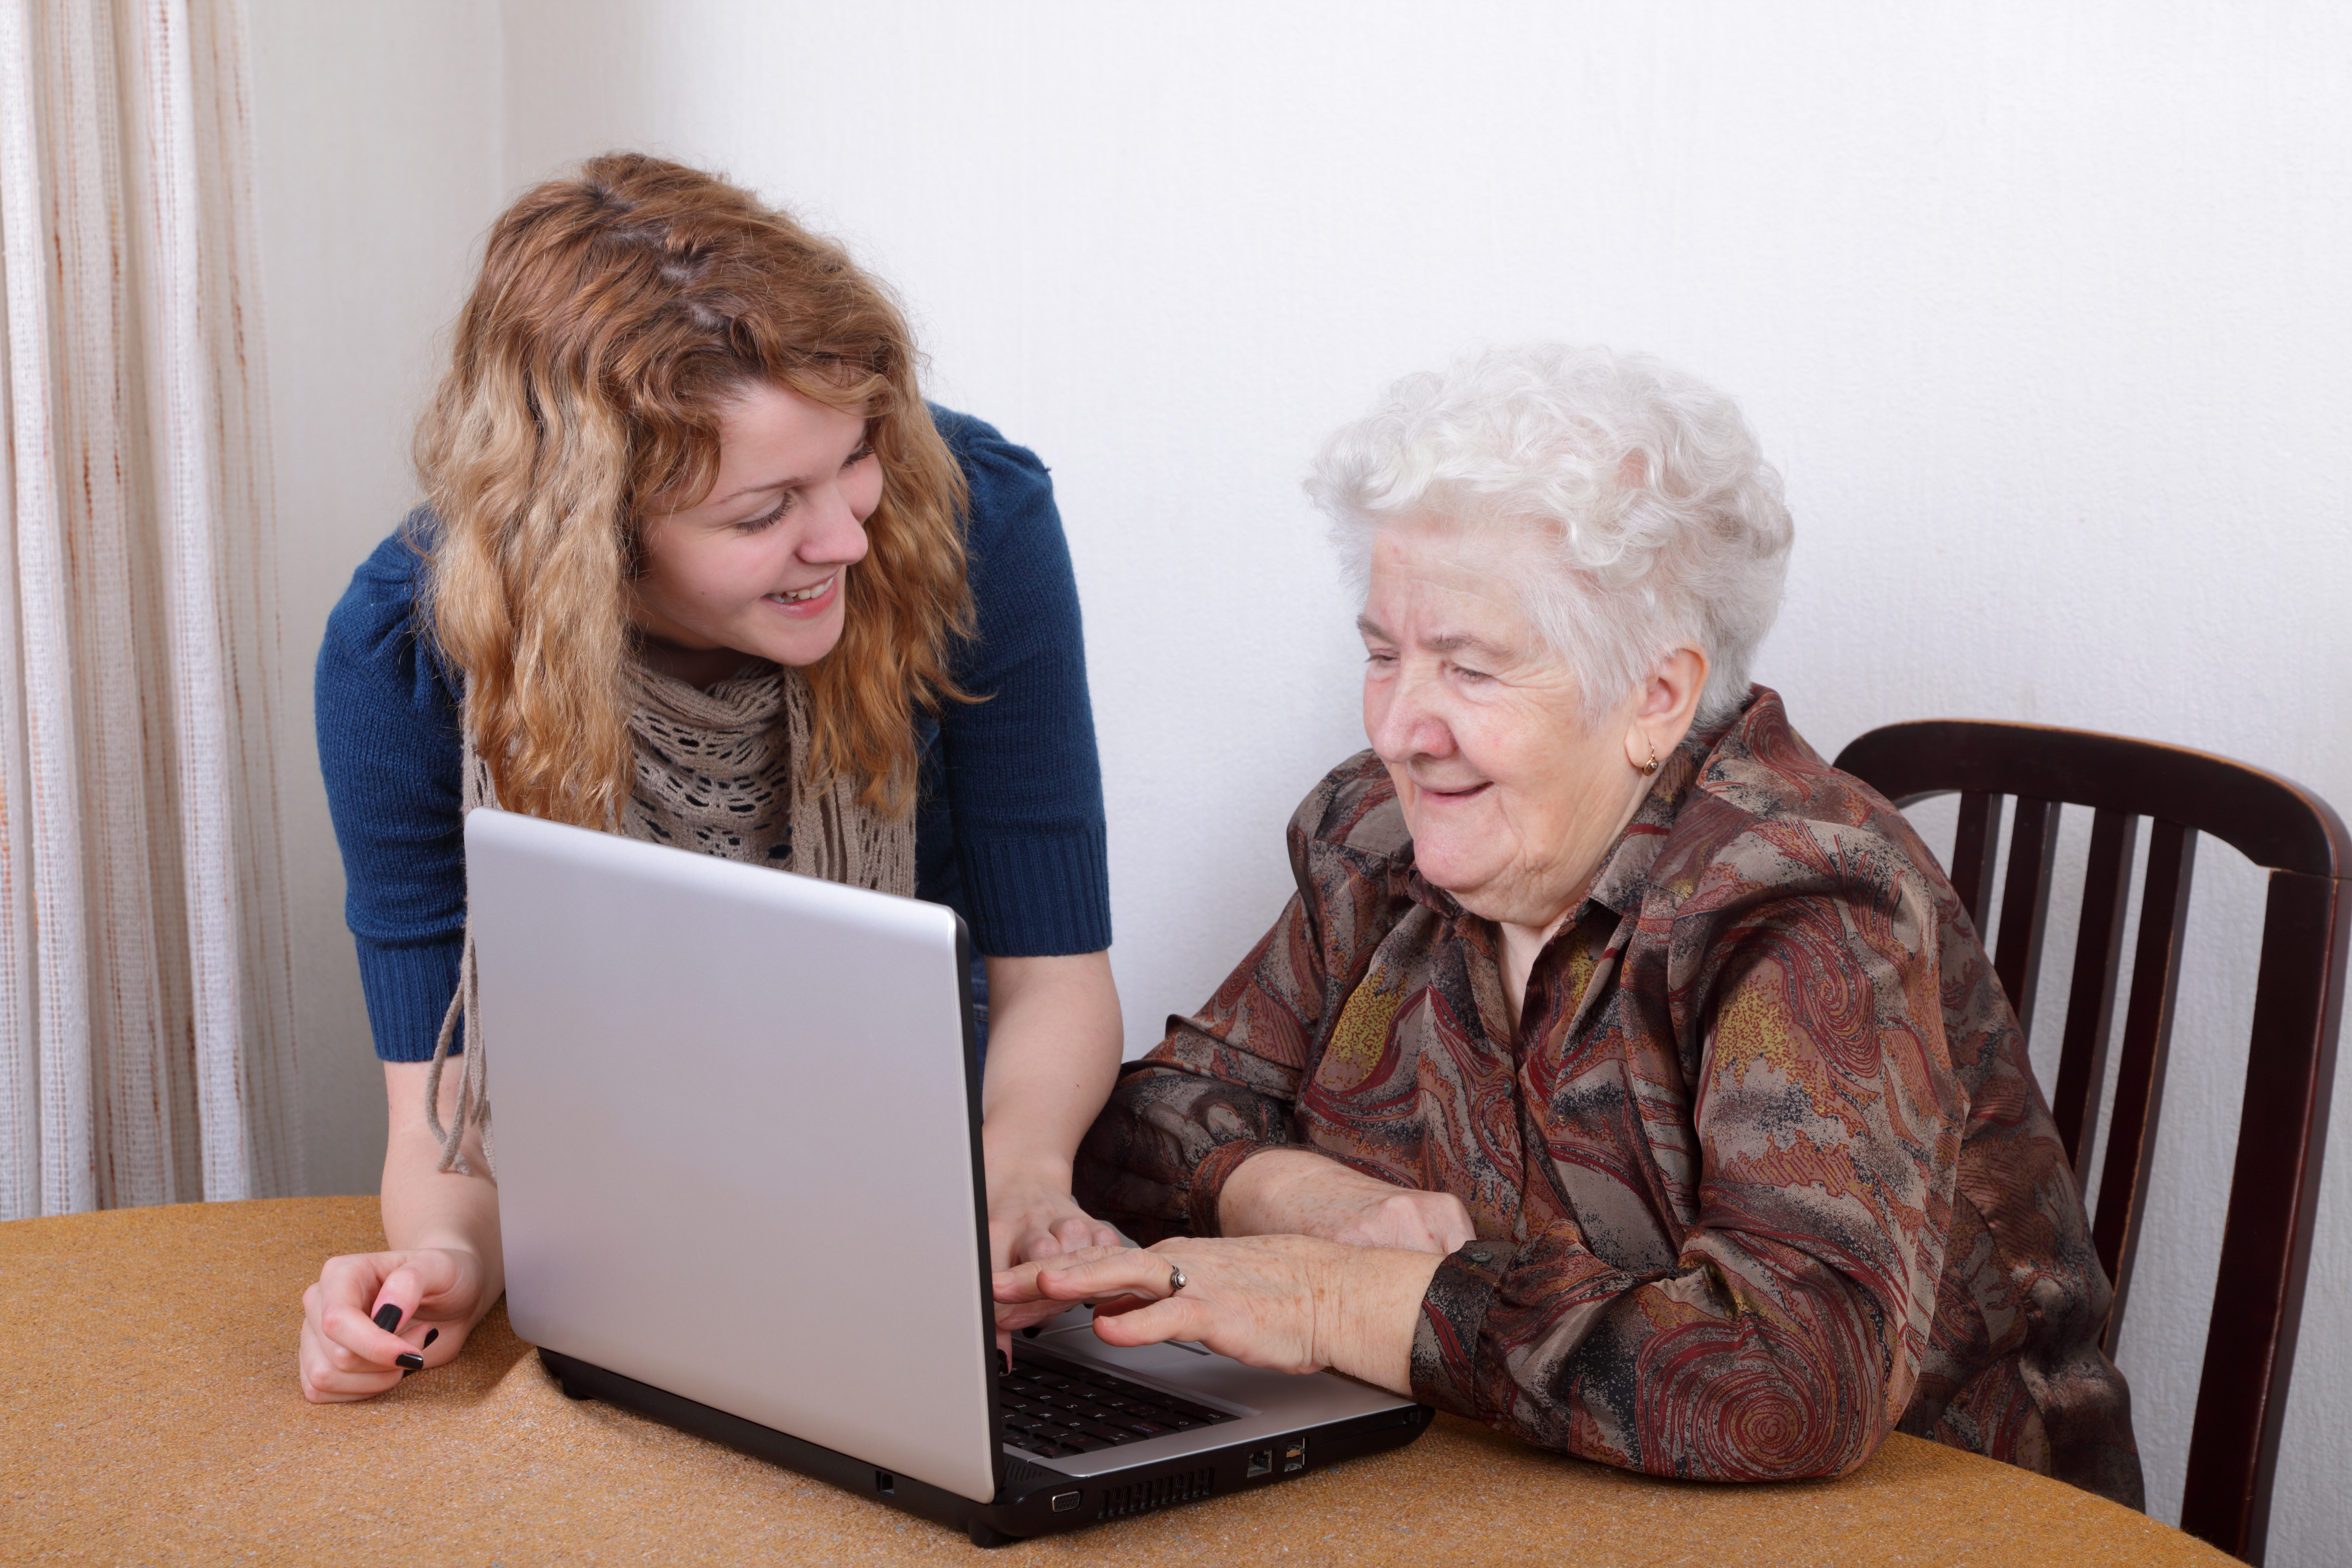 Financial Advice for Caregivers: 3 Websites With Tips